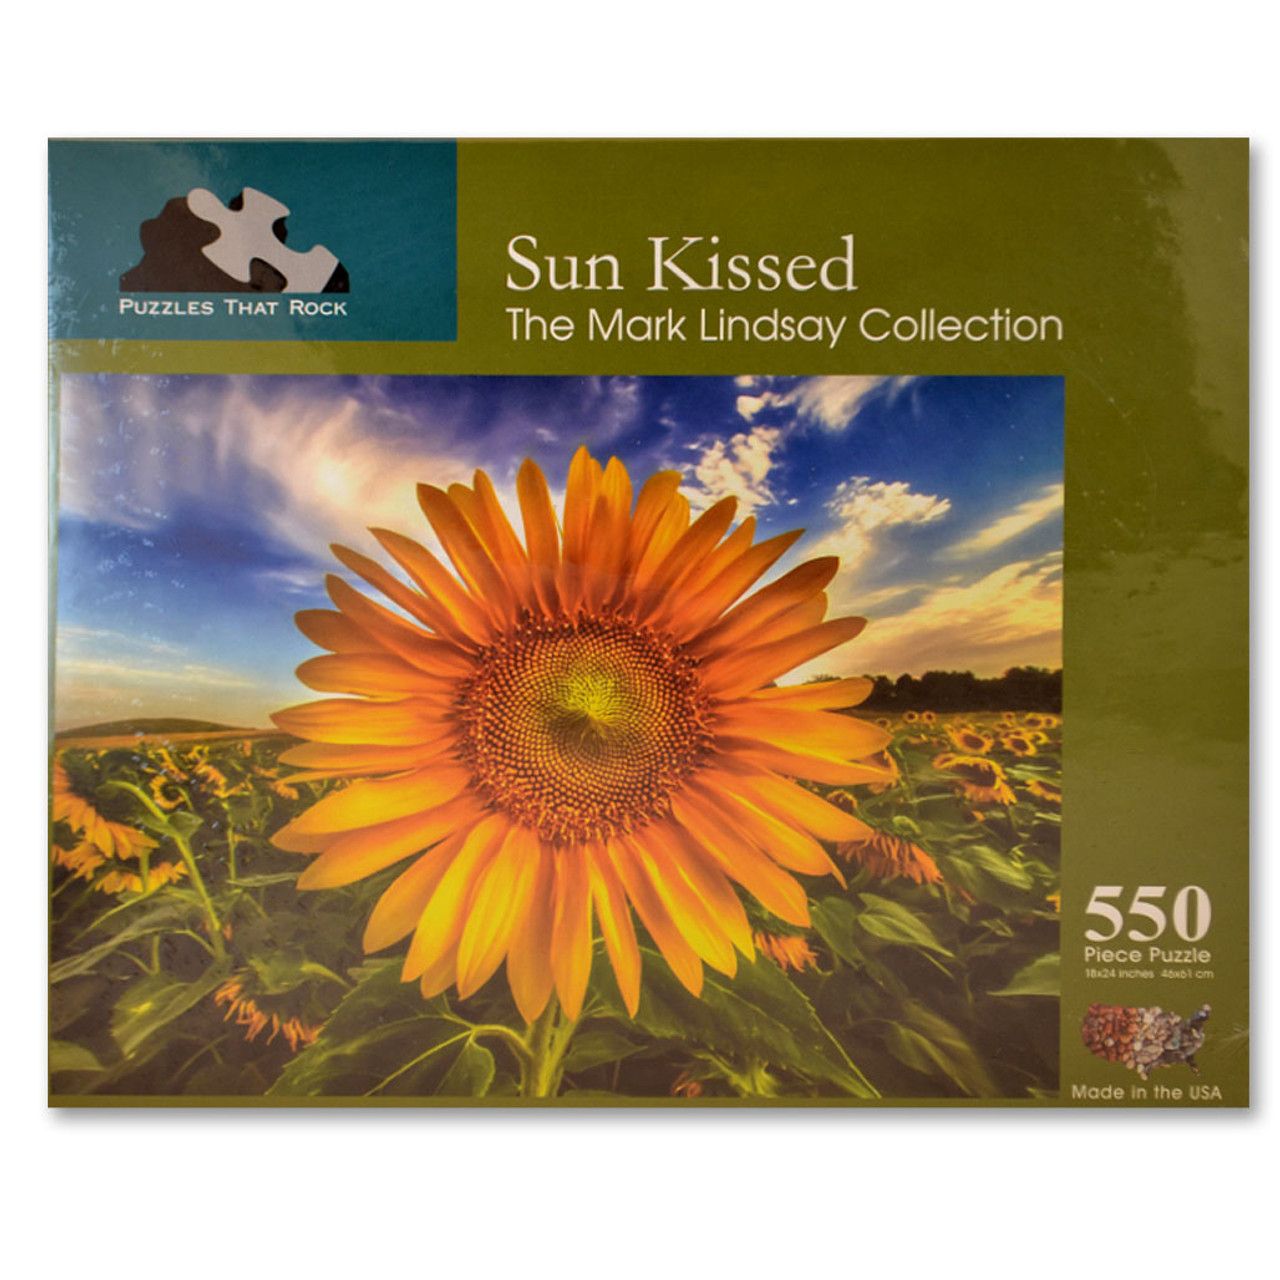 Sun Kissed Sunflower Jigsaw Puzzle